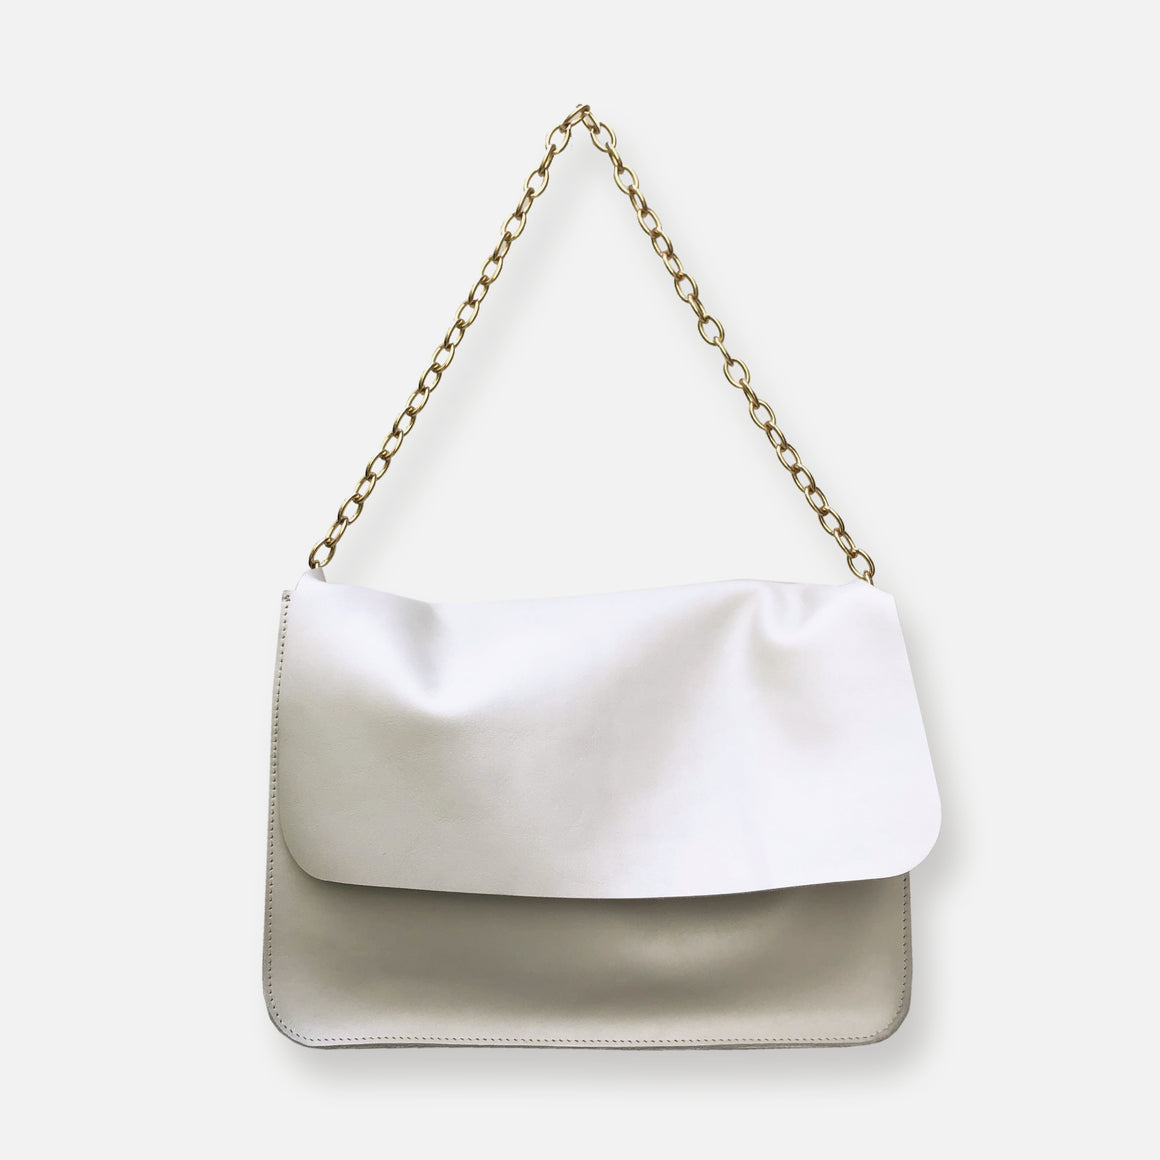 TITA HANDBAG • OFF WHITE